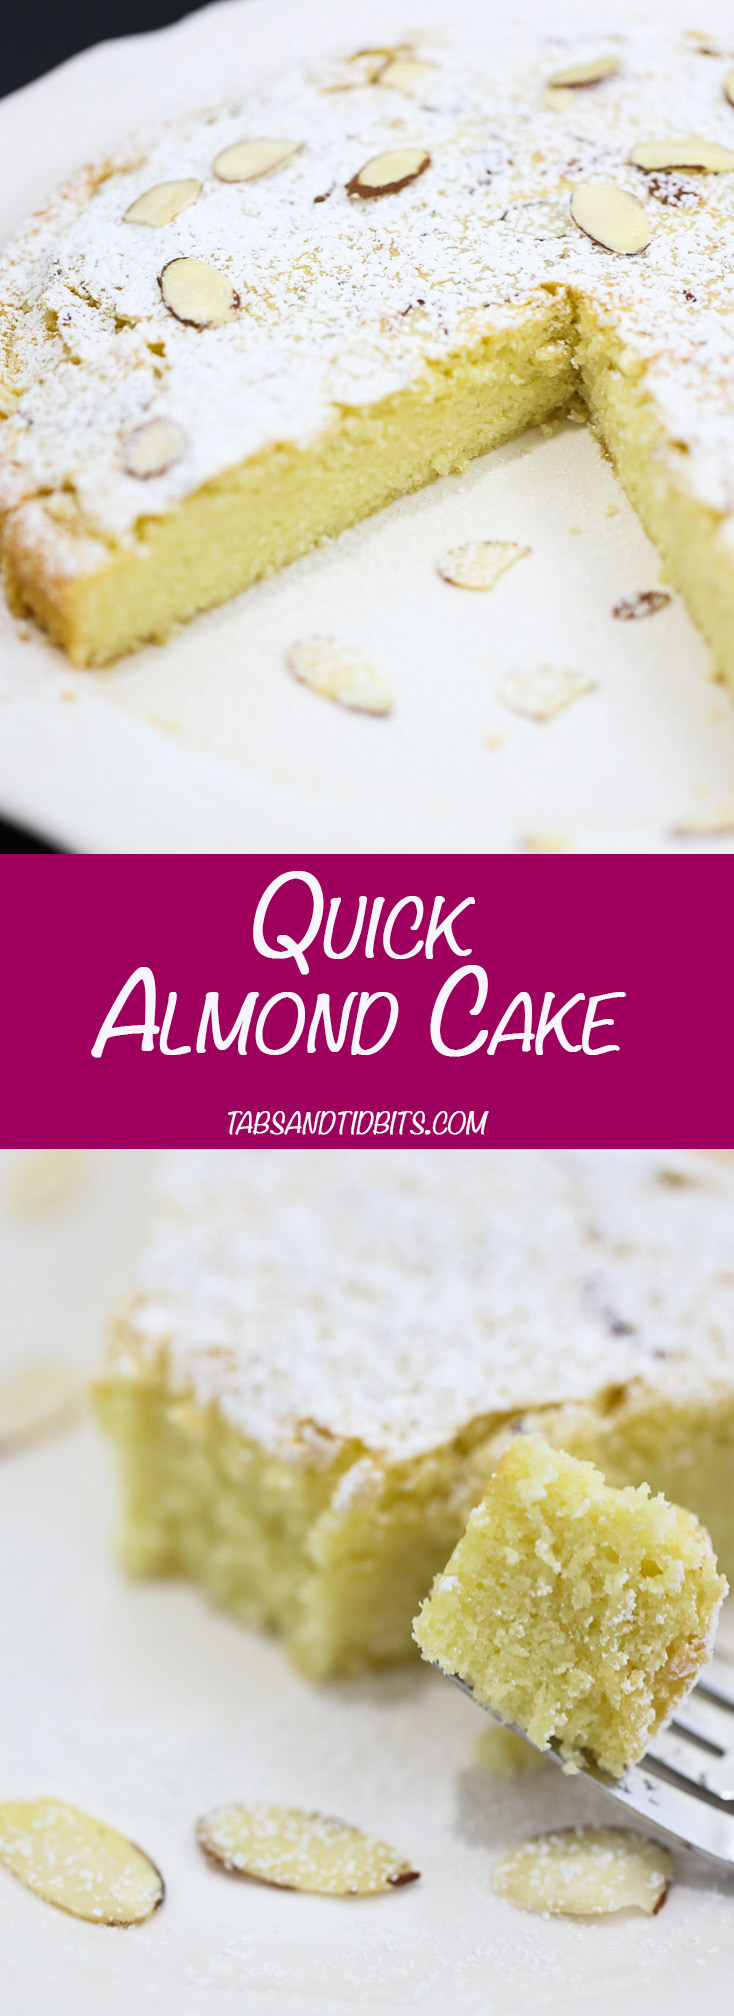 Quick Almond Cake - A quick and easy almond cake that comes together in 30 minutes.